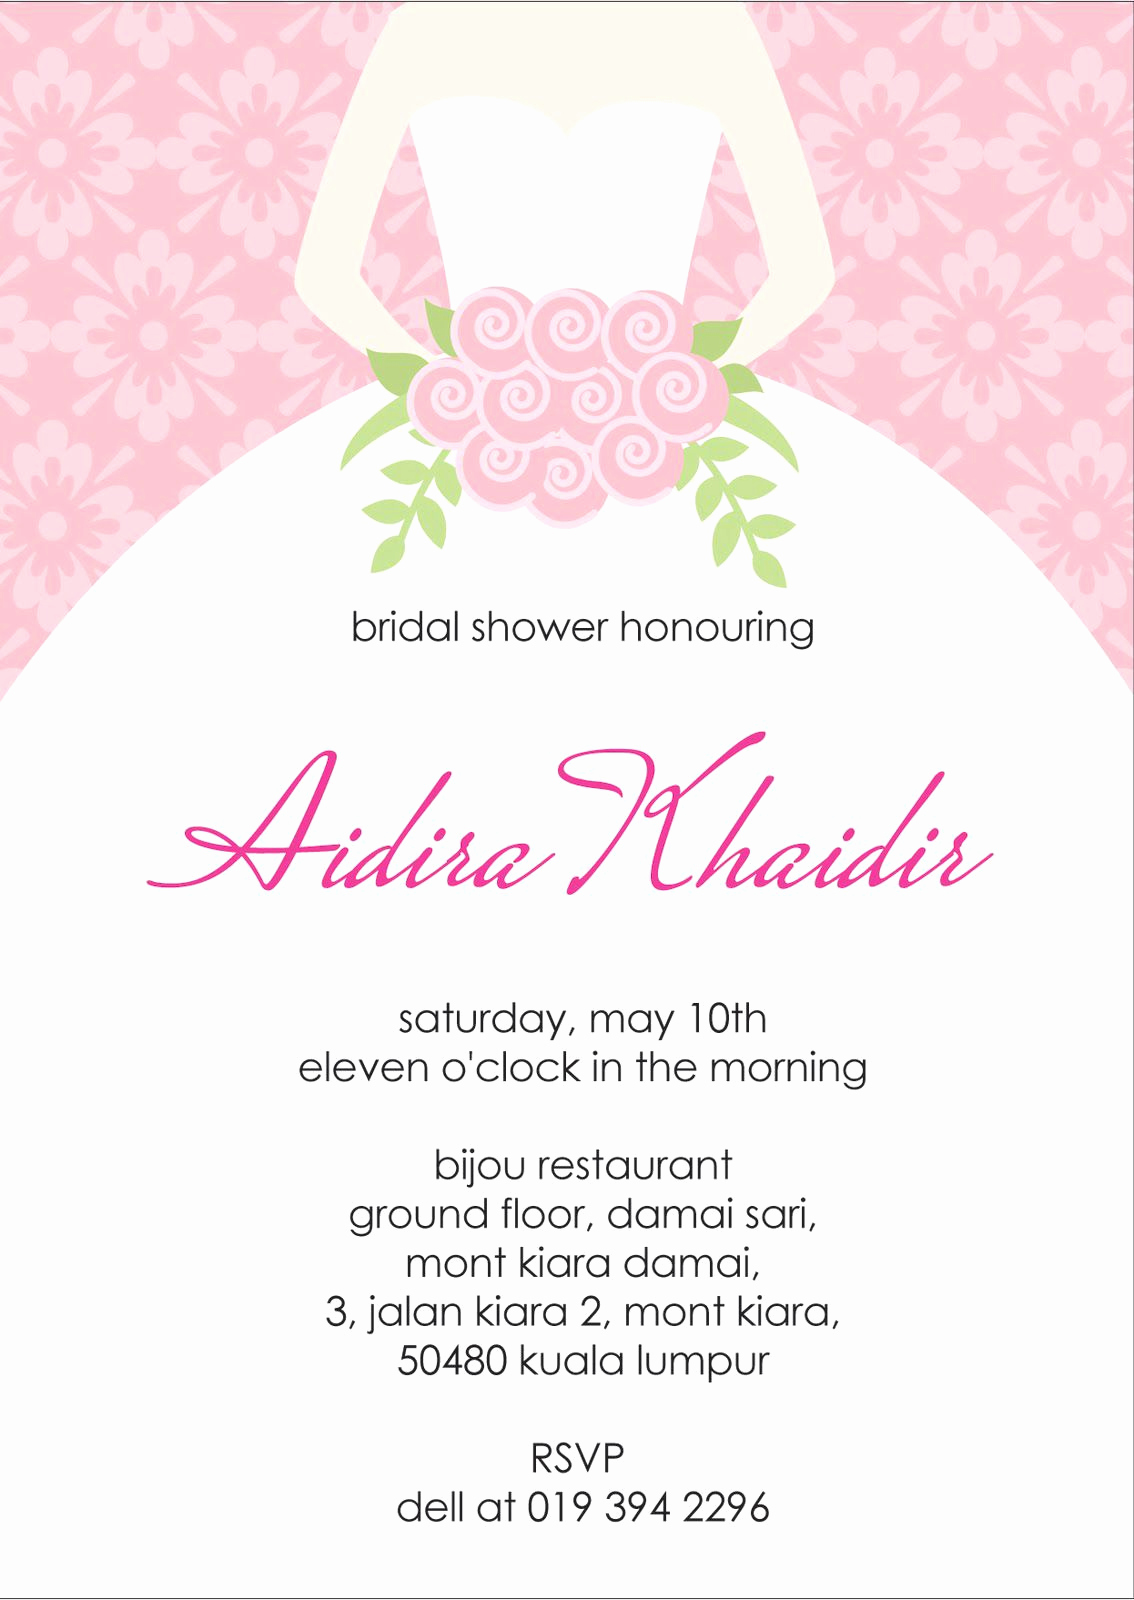 Bridal Shower Invitation Poems Awesome Bridal Shower Invitation Verbiage Bridal Shower